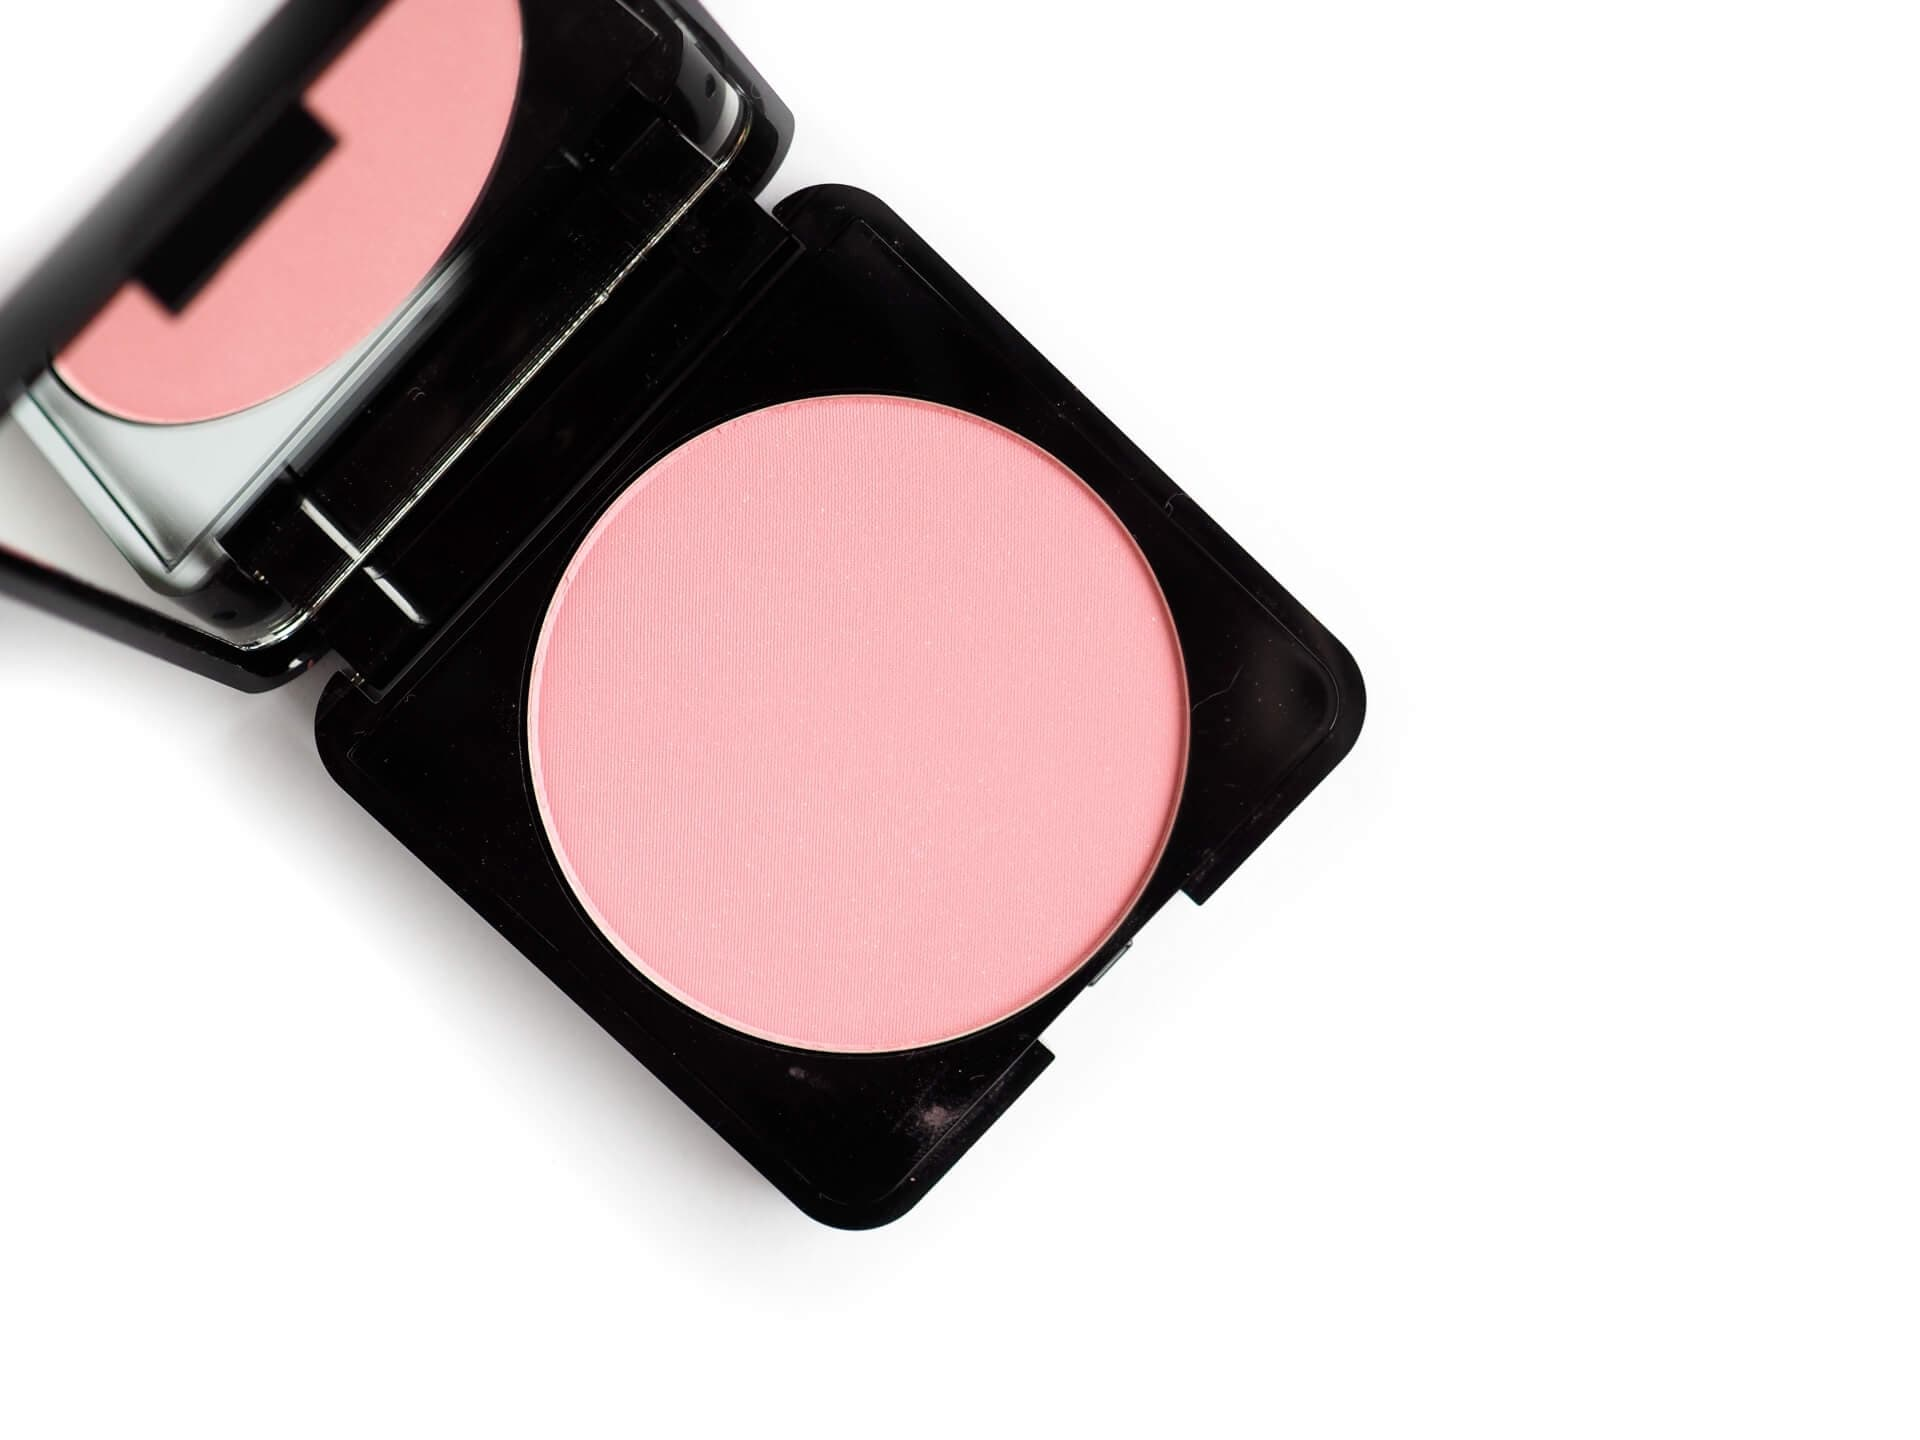 SinSkin Matt Blush Powder